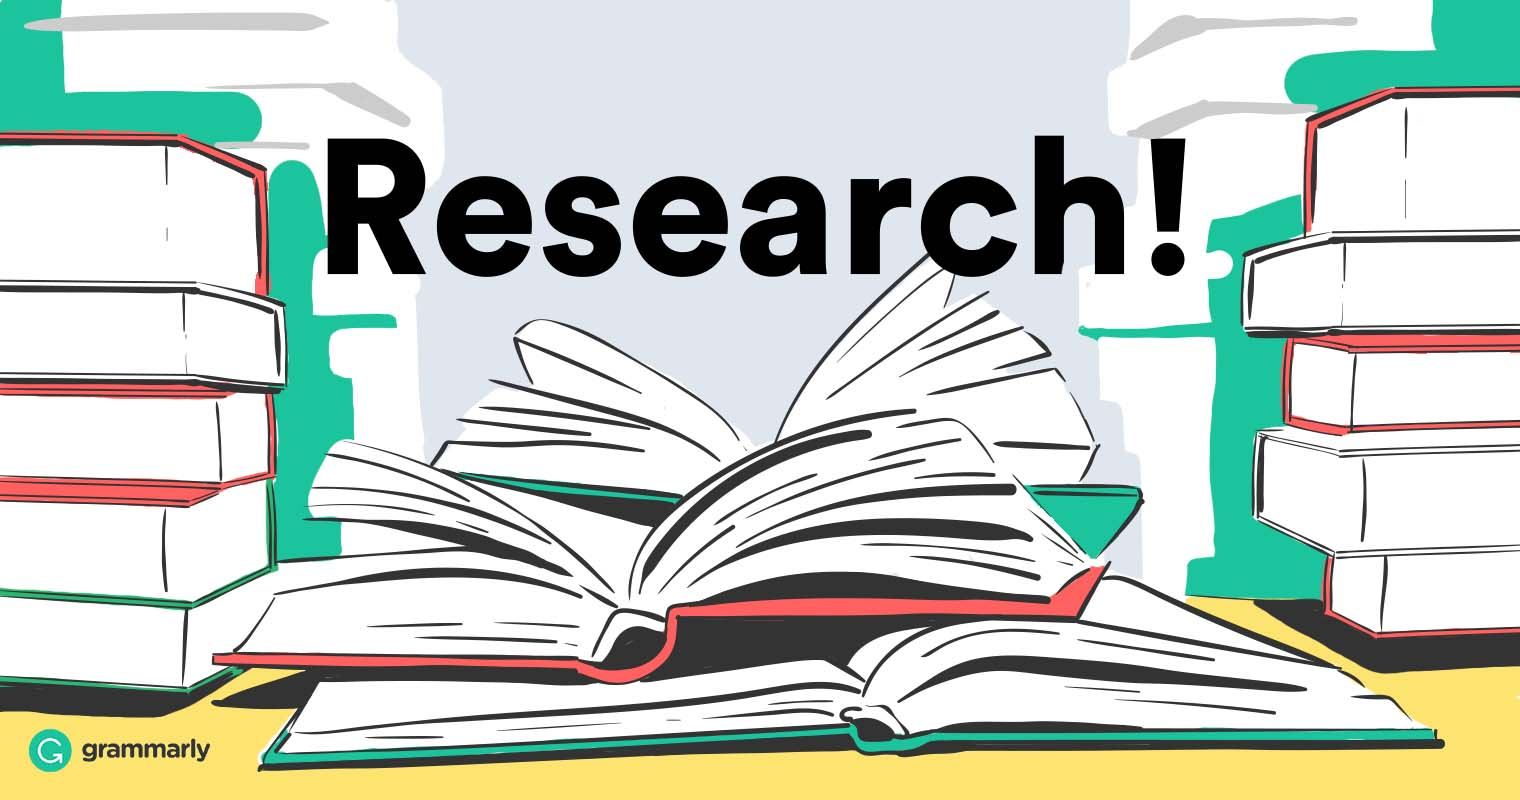 017 Research Ideas To Write Paper Dreaded A On Good Full